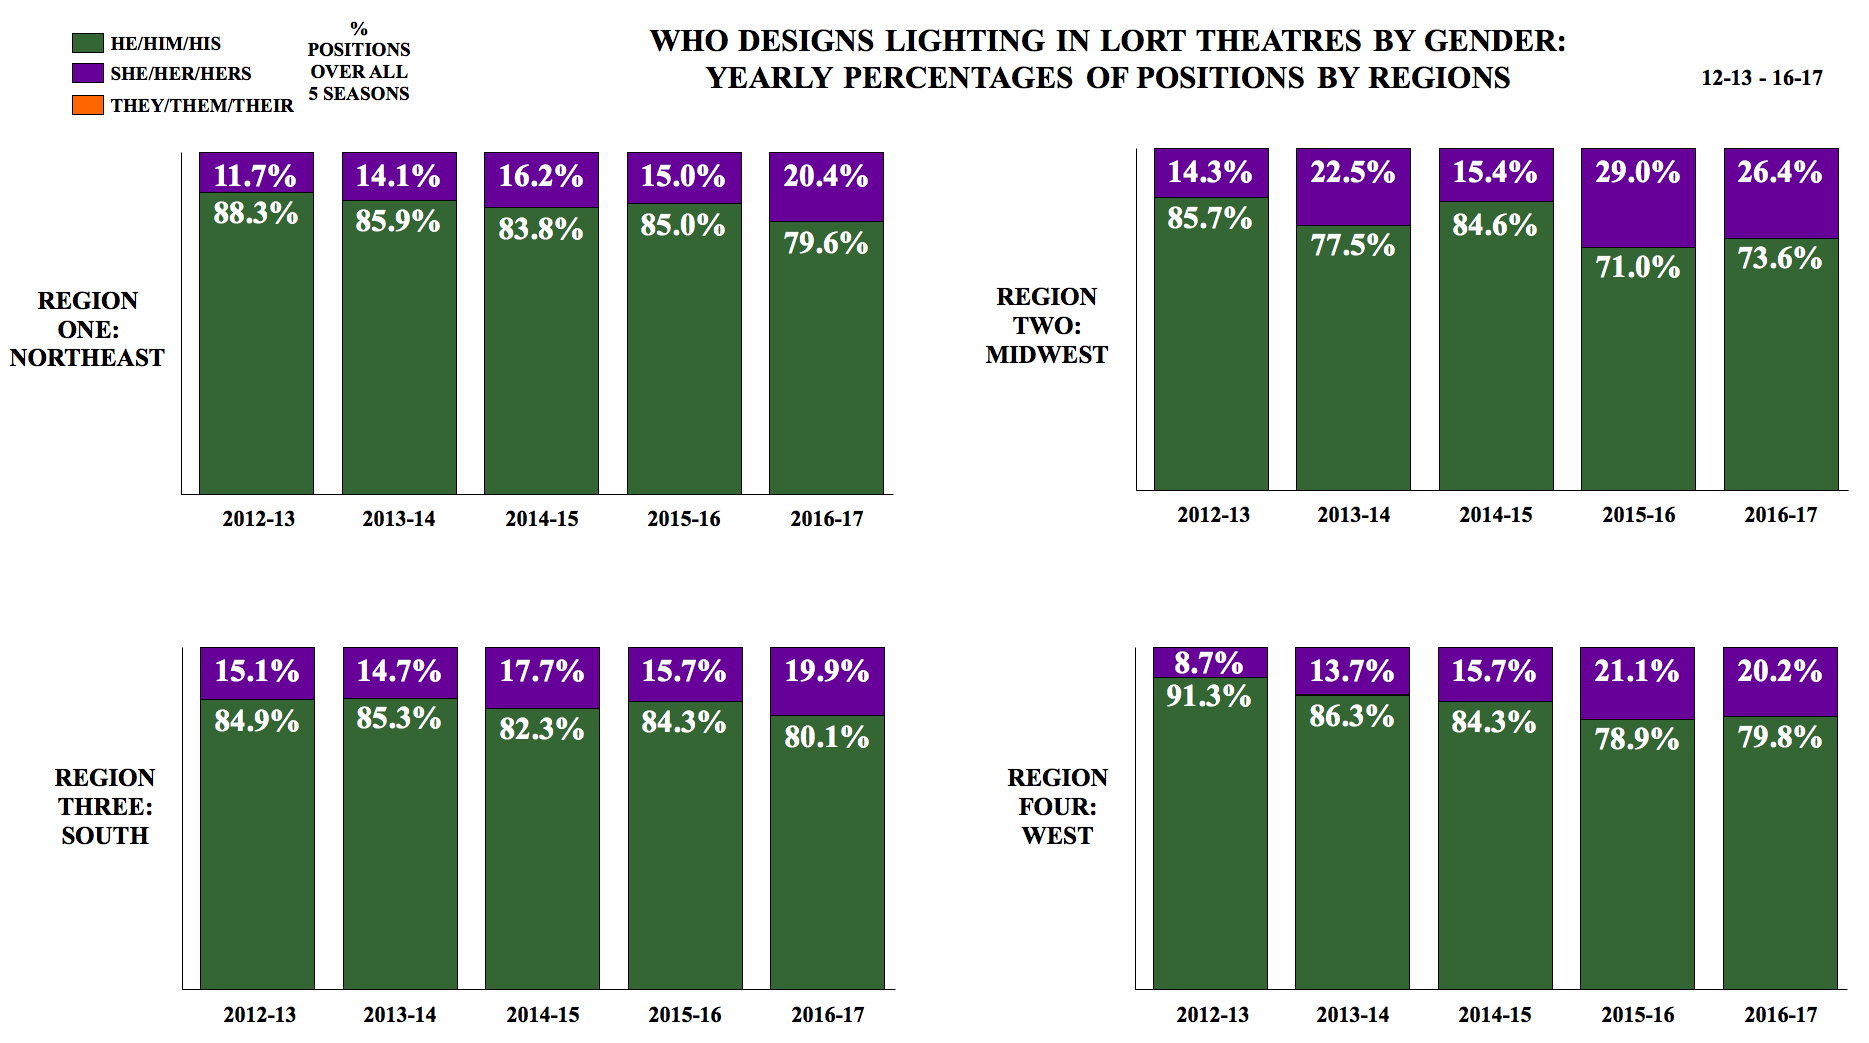 who designs lighting by region and gender